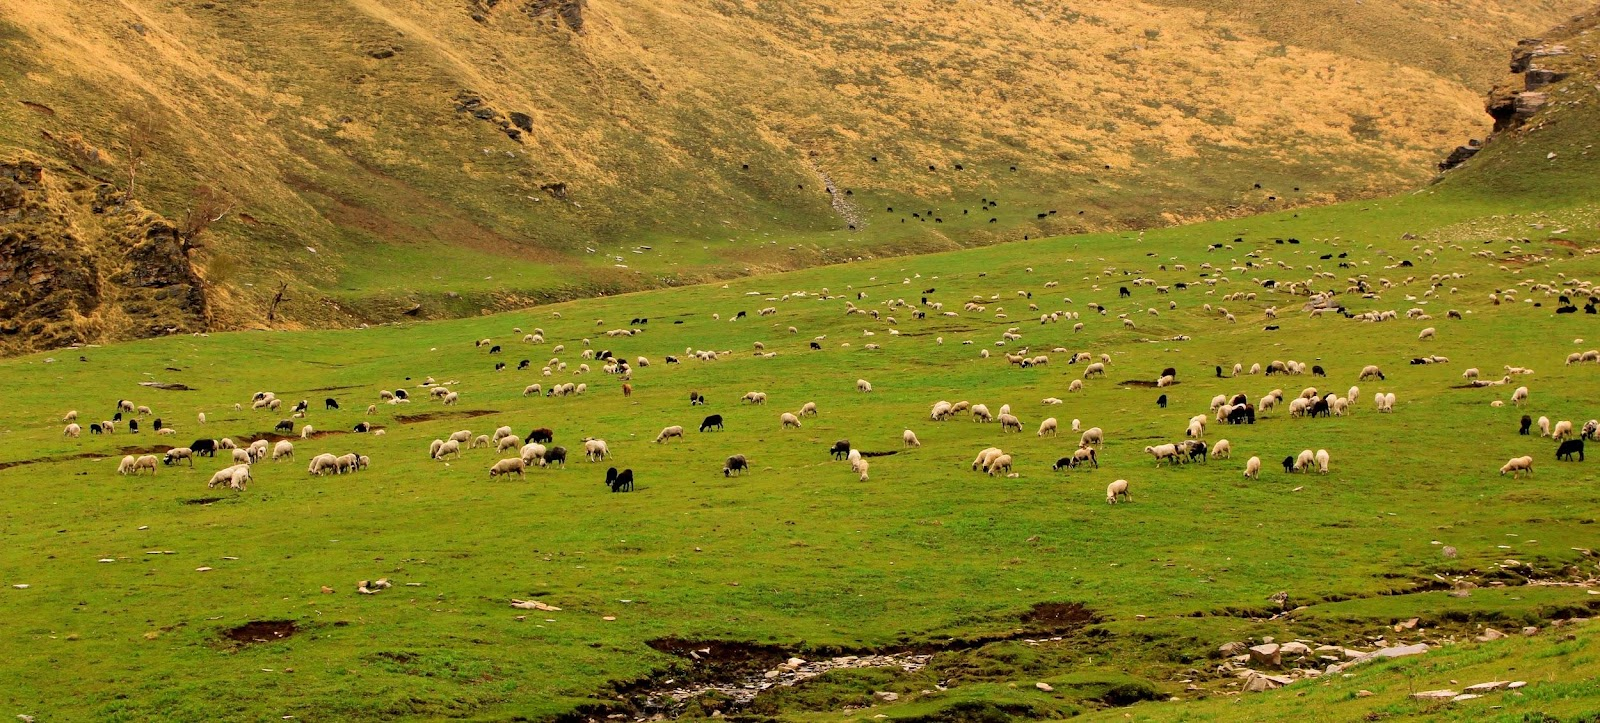 The_Grassland_of_Pabbar_Valley(Dyara_Thach).jpg